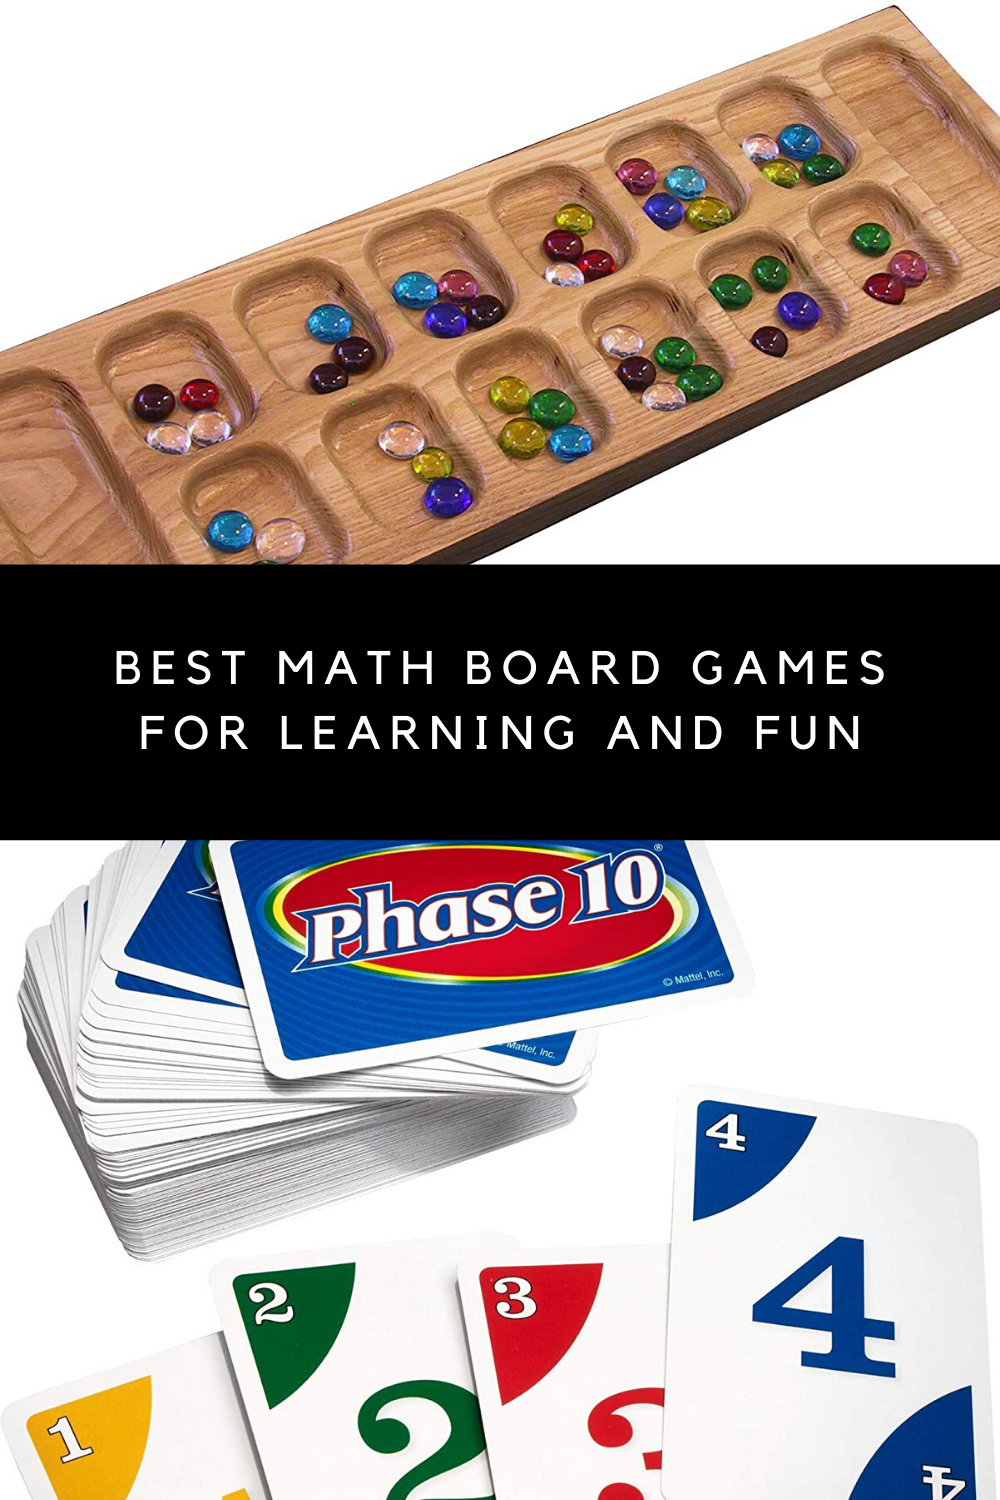 Best Math Board Games